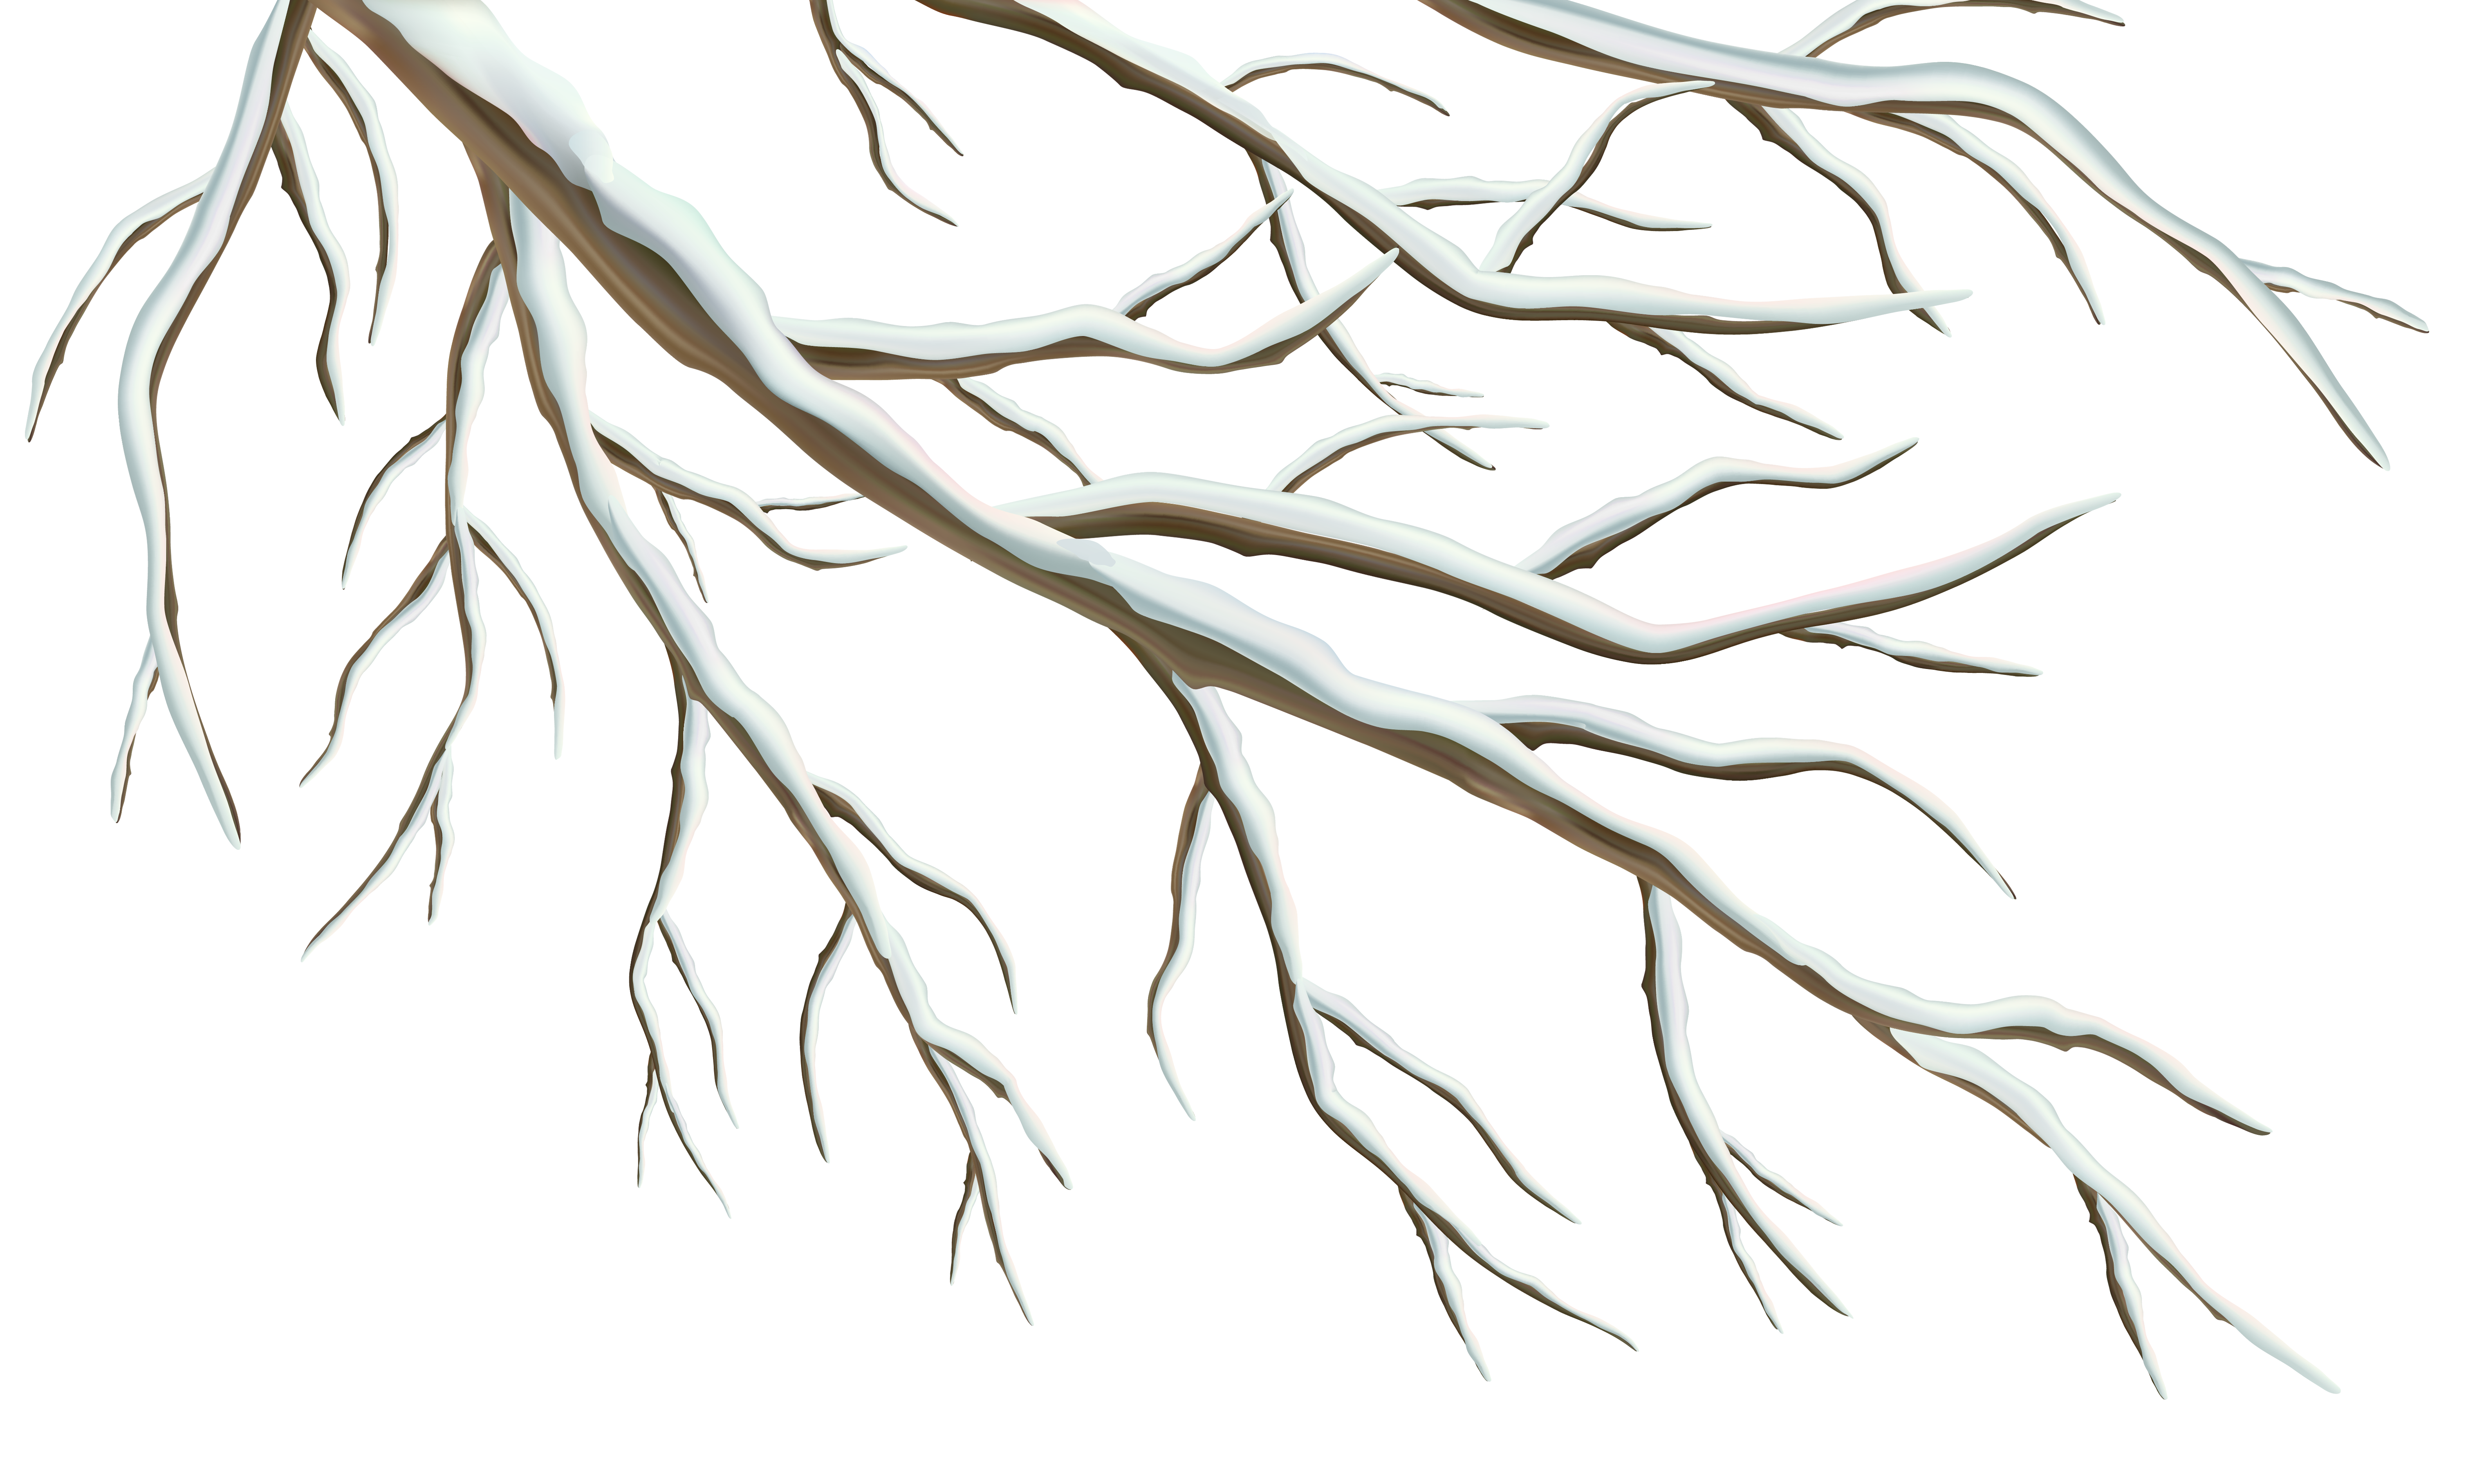 Free clipart winter tree image transparent download Winter Branch PNG Clipart Image | Gallery Yopriceville - High ... image transparent download